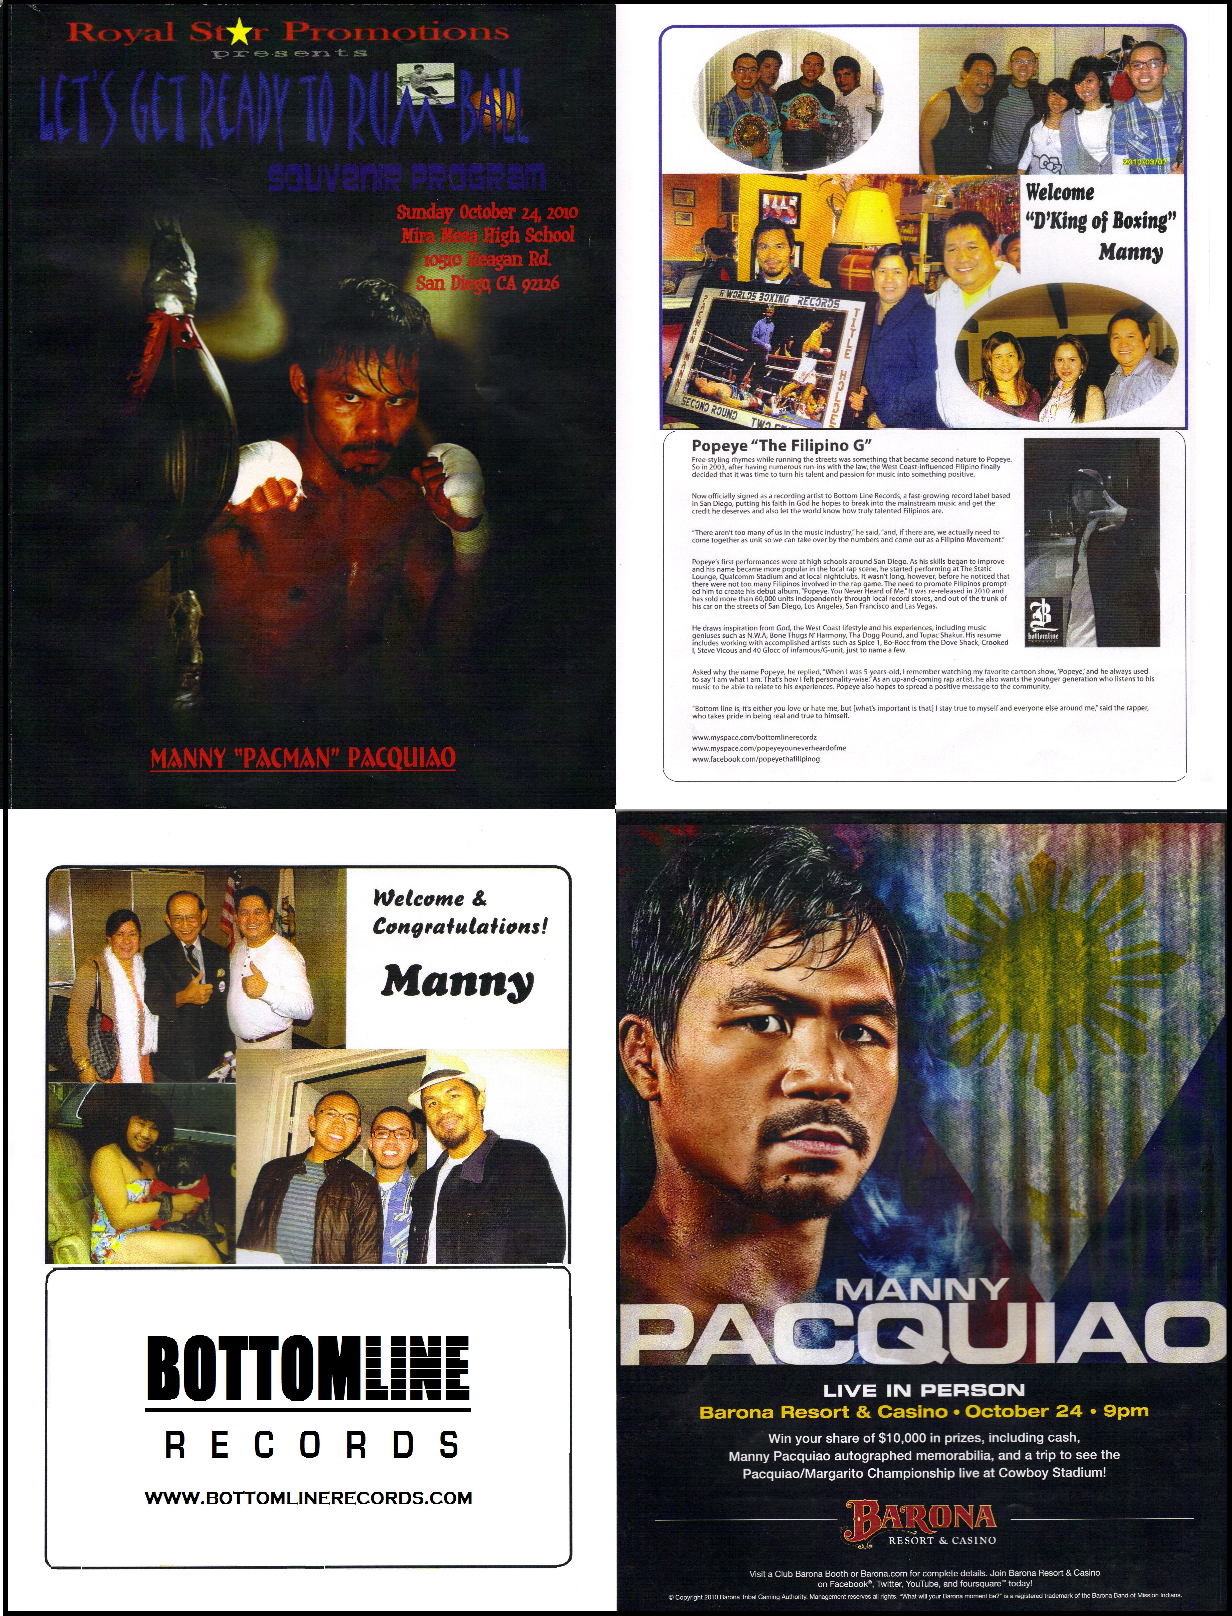 Pacquiao vs Mayweather - Fight of the Century 2